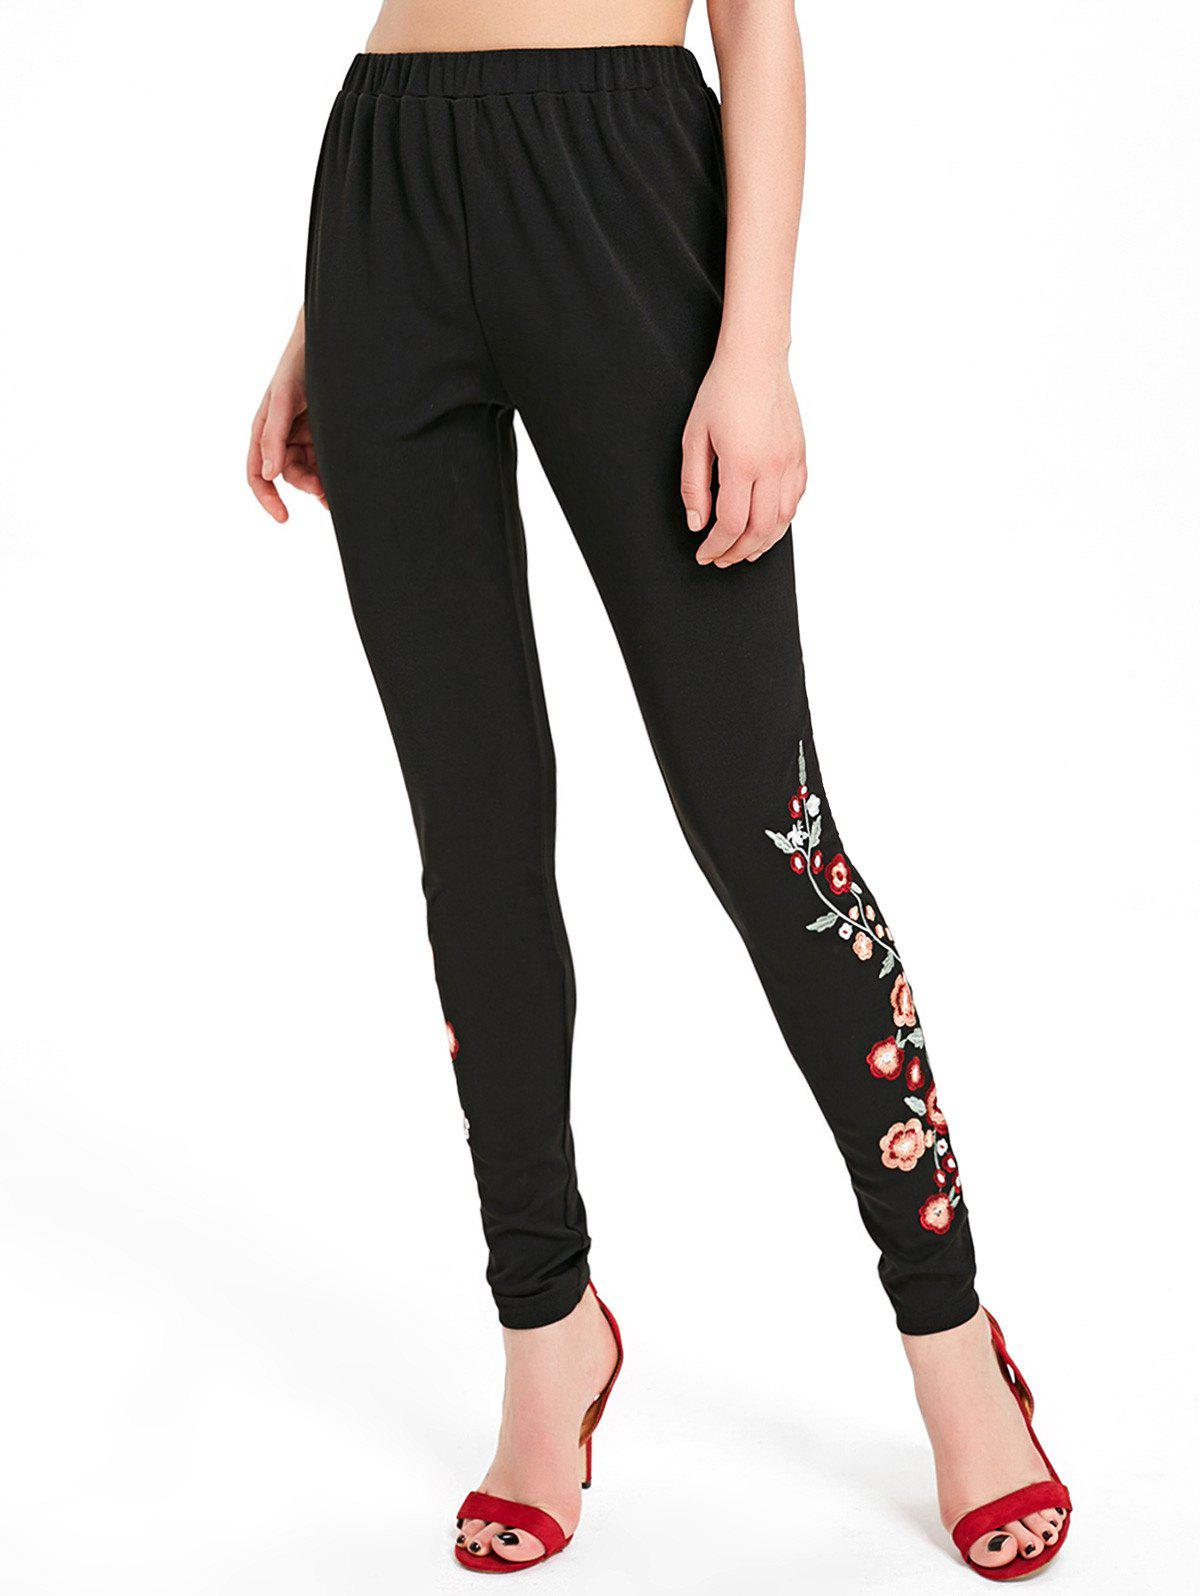 Shops Floral Embroidery Pants